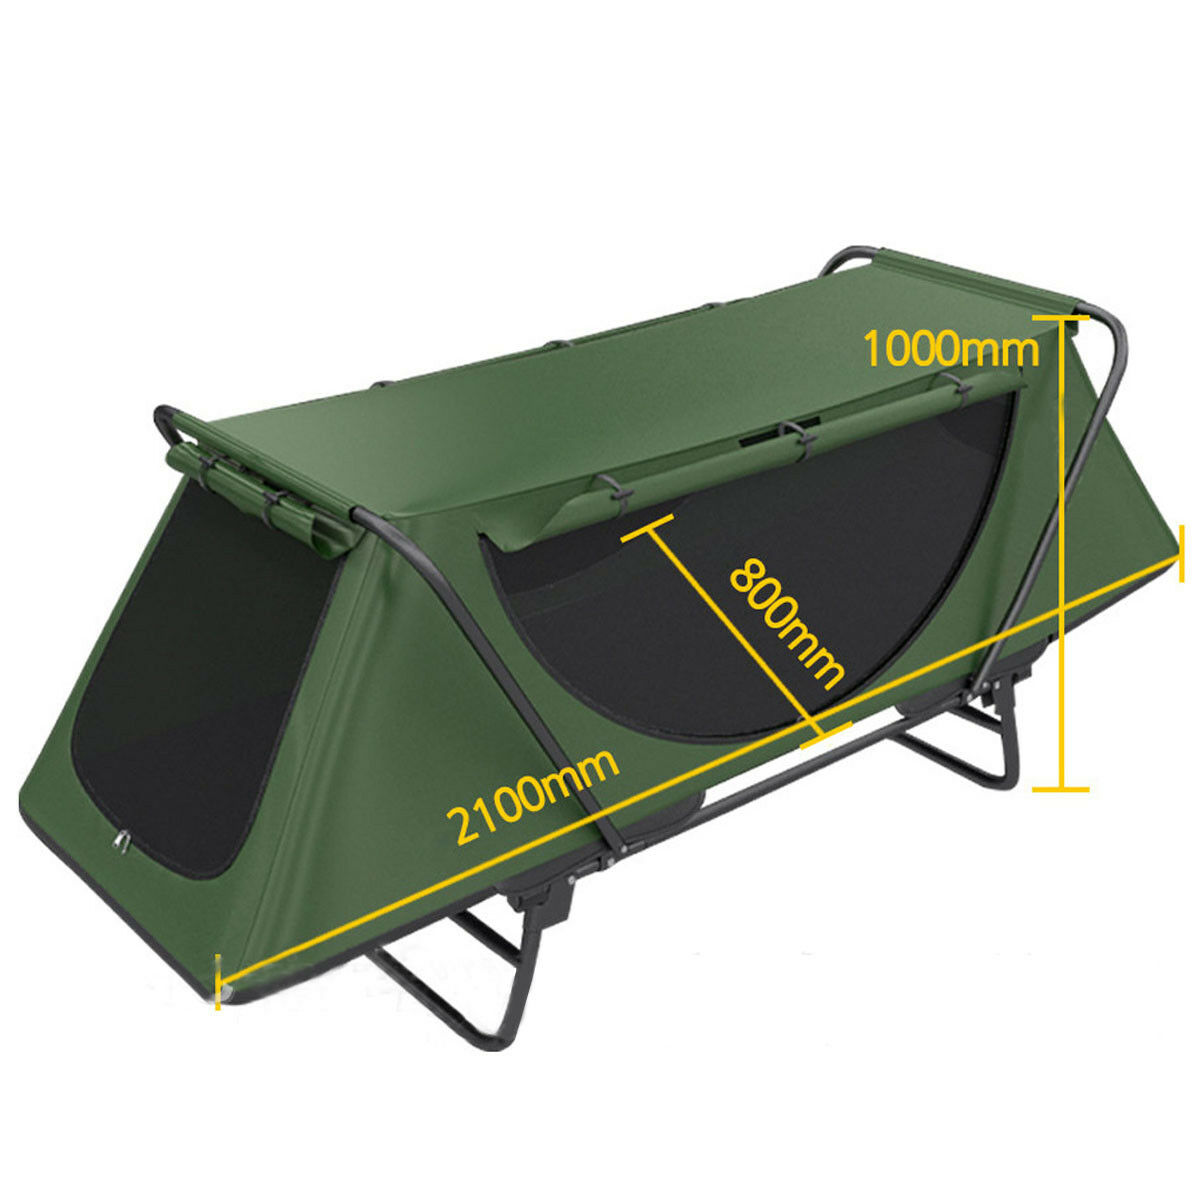 1 Person  Folding Camping Tent Waterproof Multipurpose Cot Outdoor Sleeping Bed  authentic